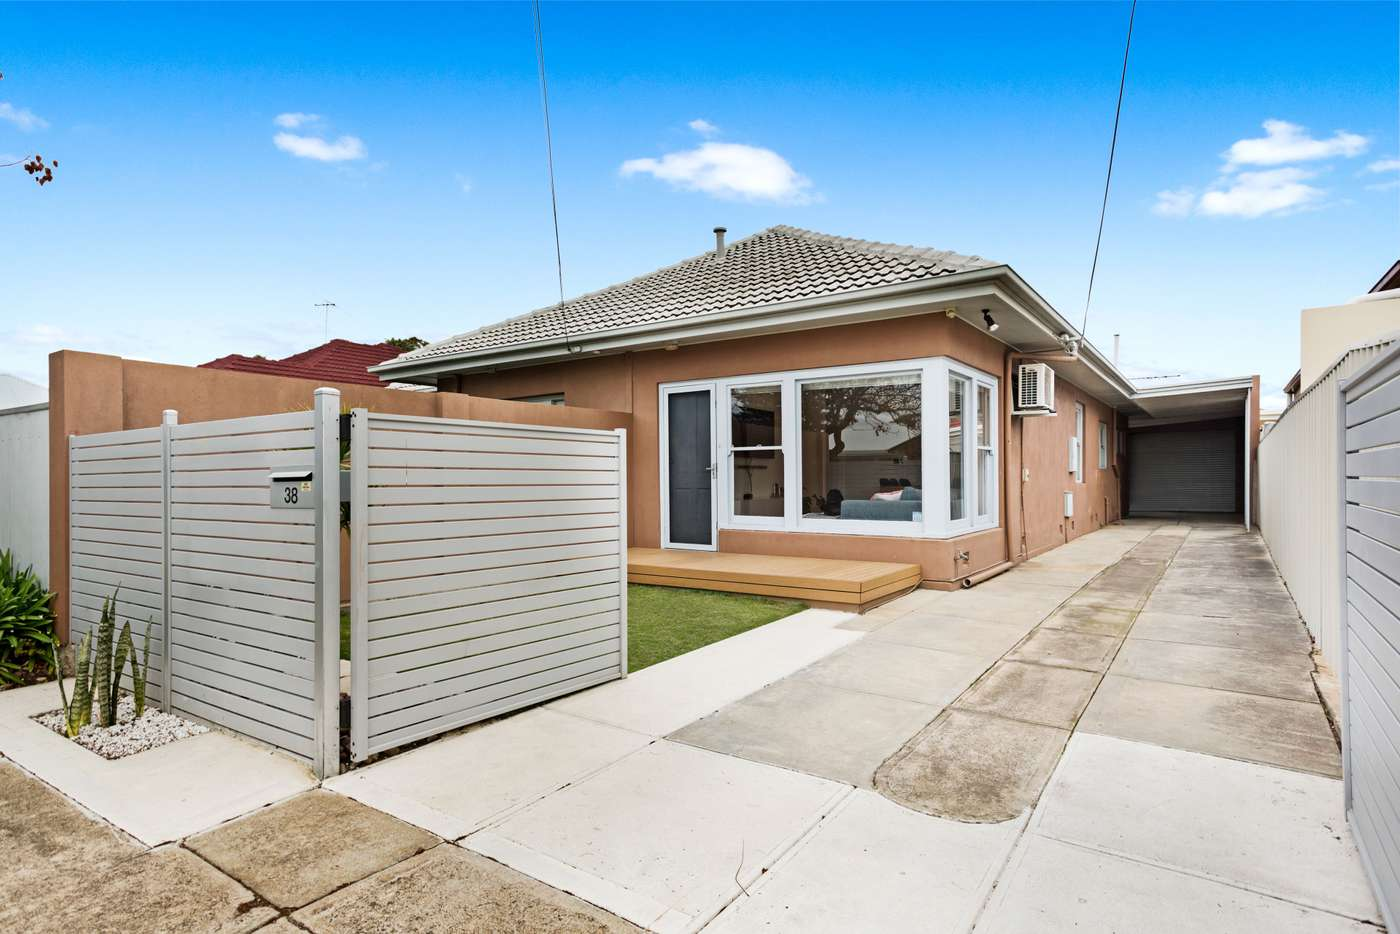 Fifth view of Homely house listing, 38 King Street, Alberton SA 5014